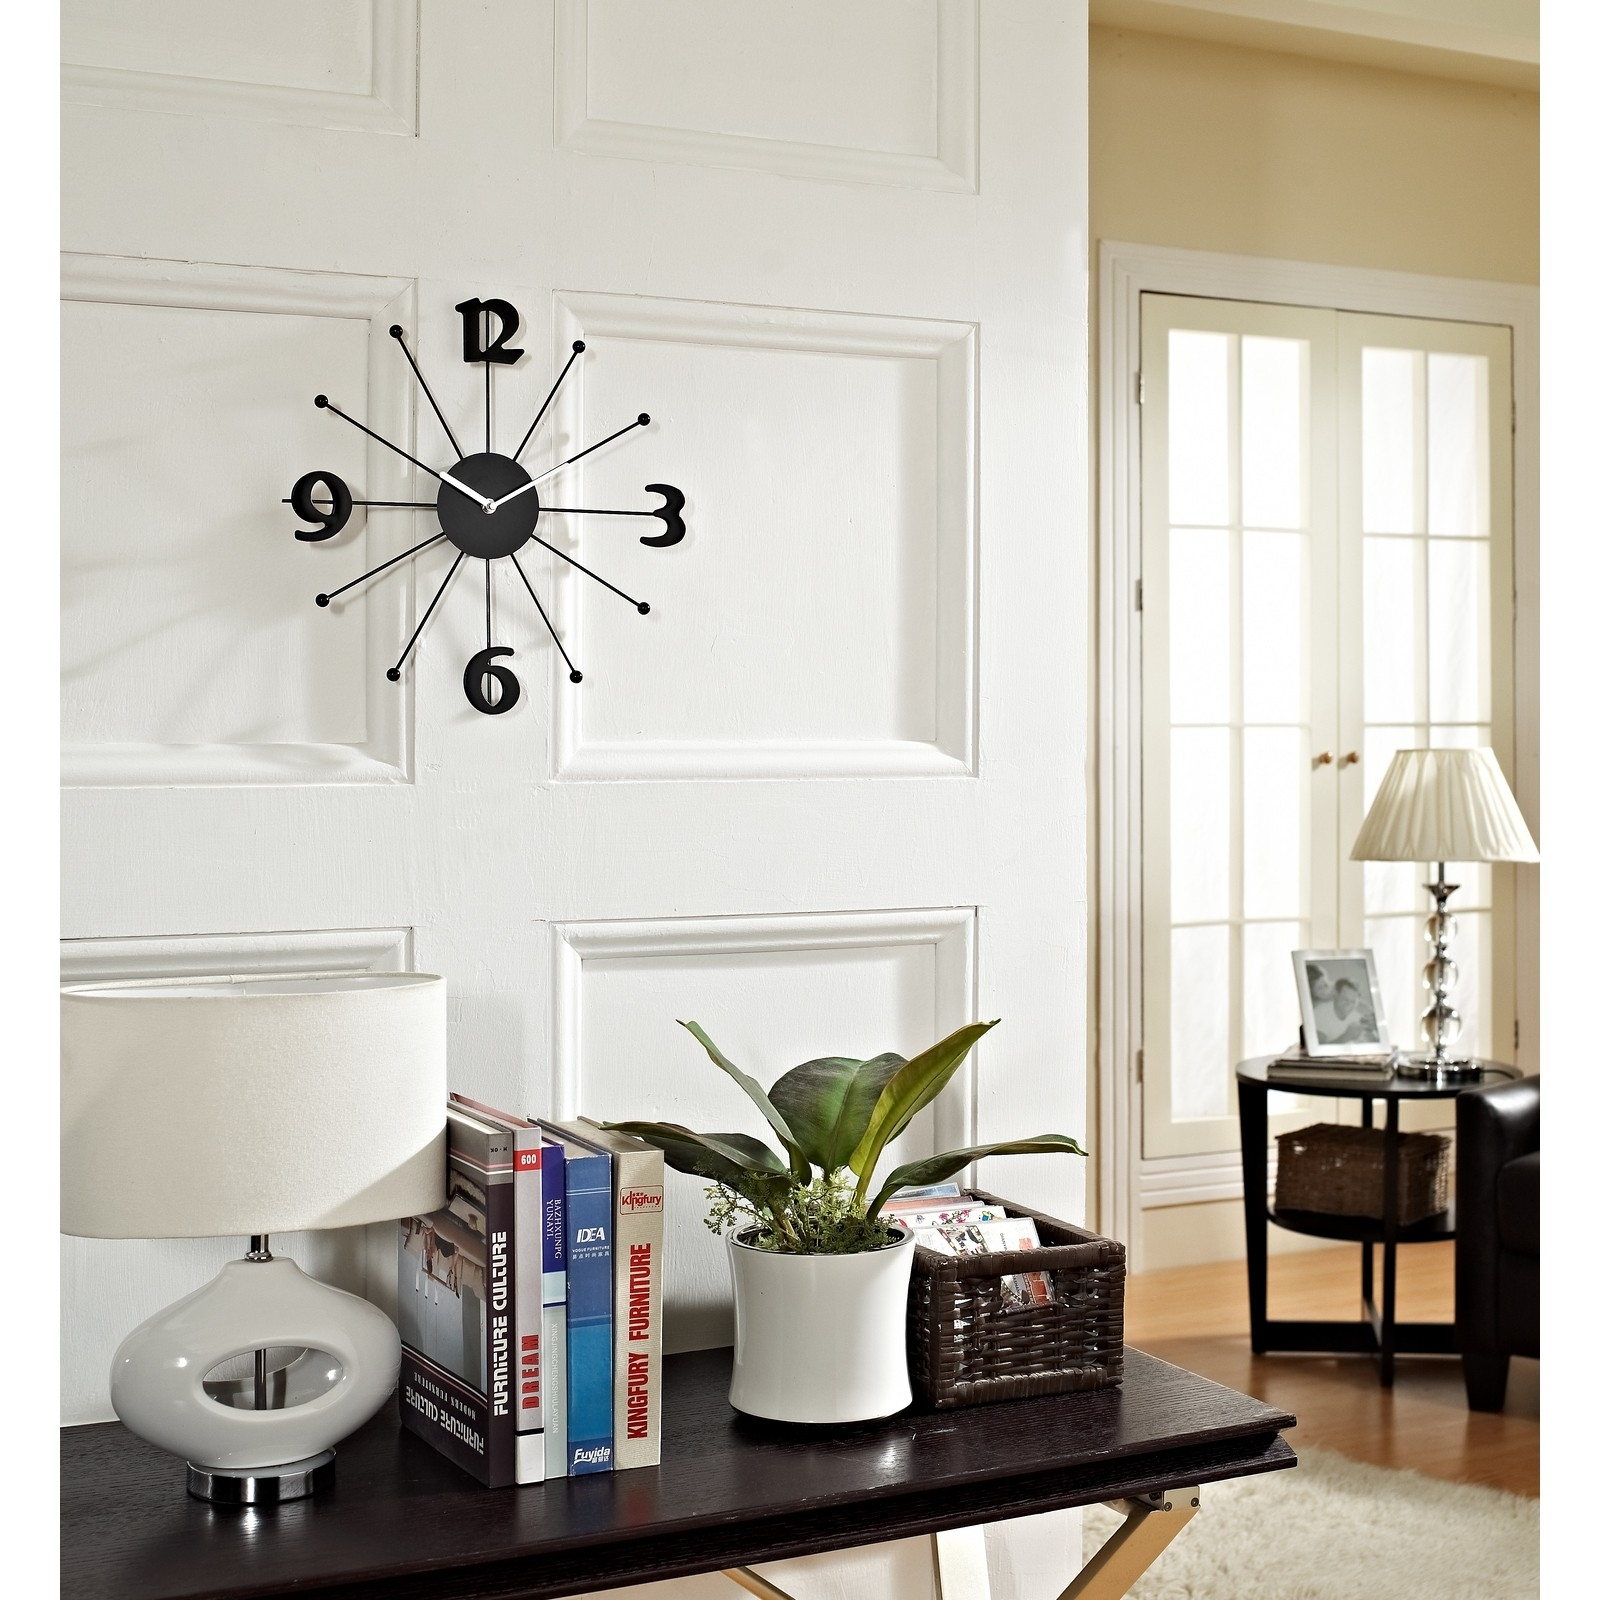 Decorative Fancy Wall Clocks | Homesfeed Pertaining To Most Current Clock Wall Accents (View 5 of 15)